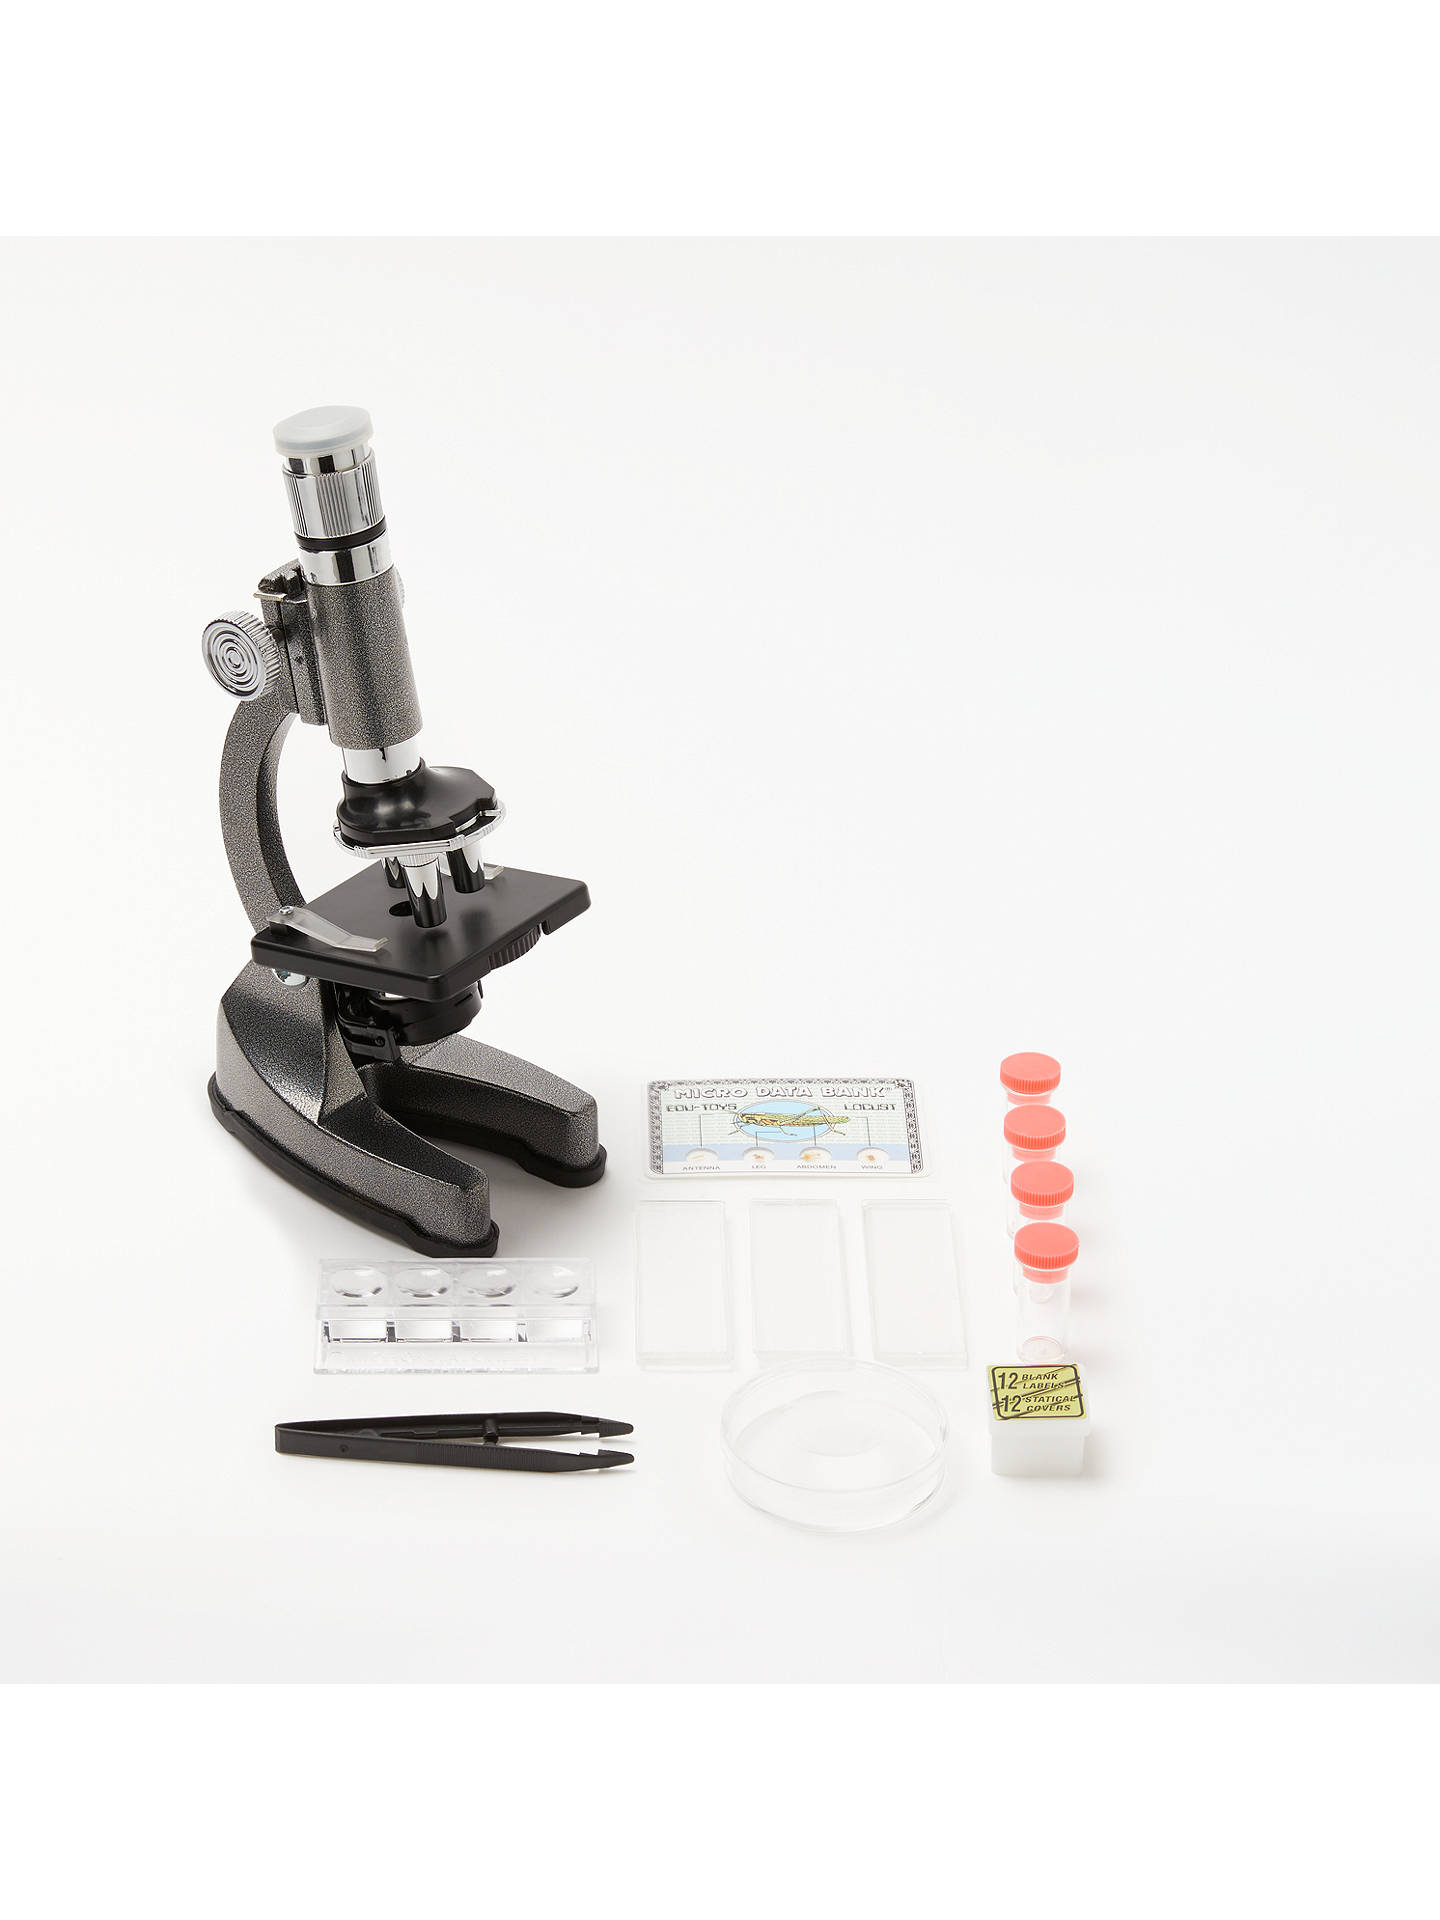 BuyJohn Lewis Partners 900x Microscope Set Online At Johnlewis